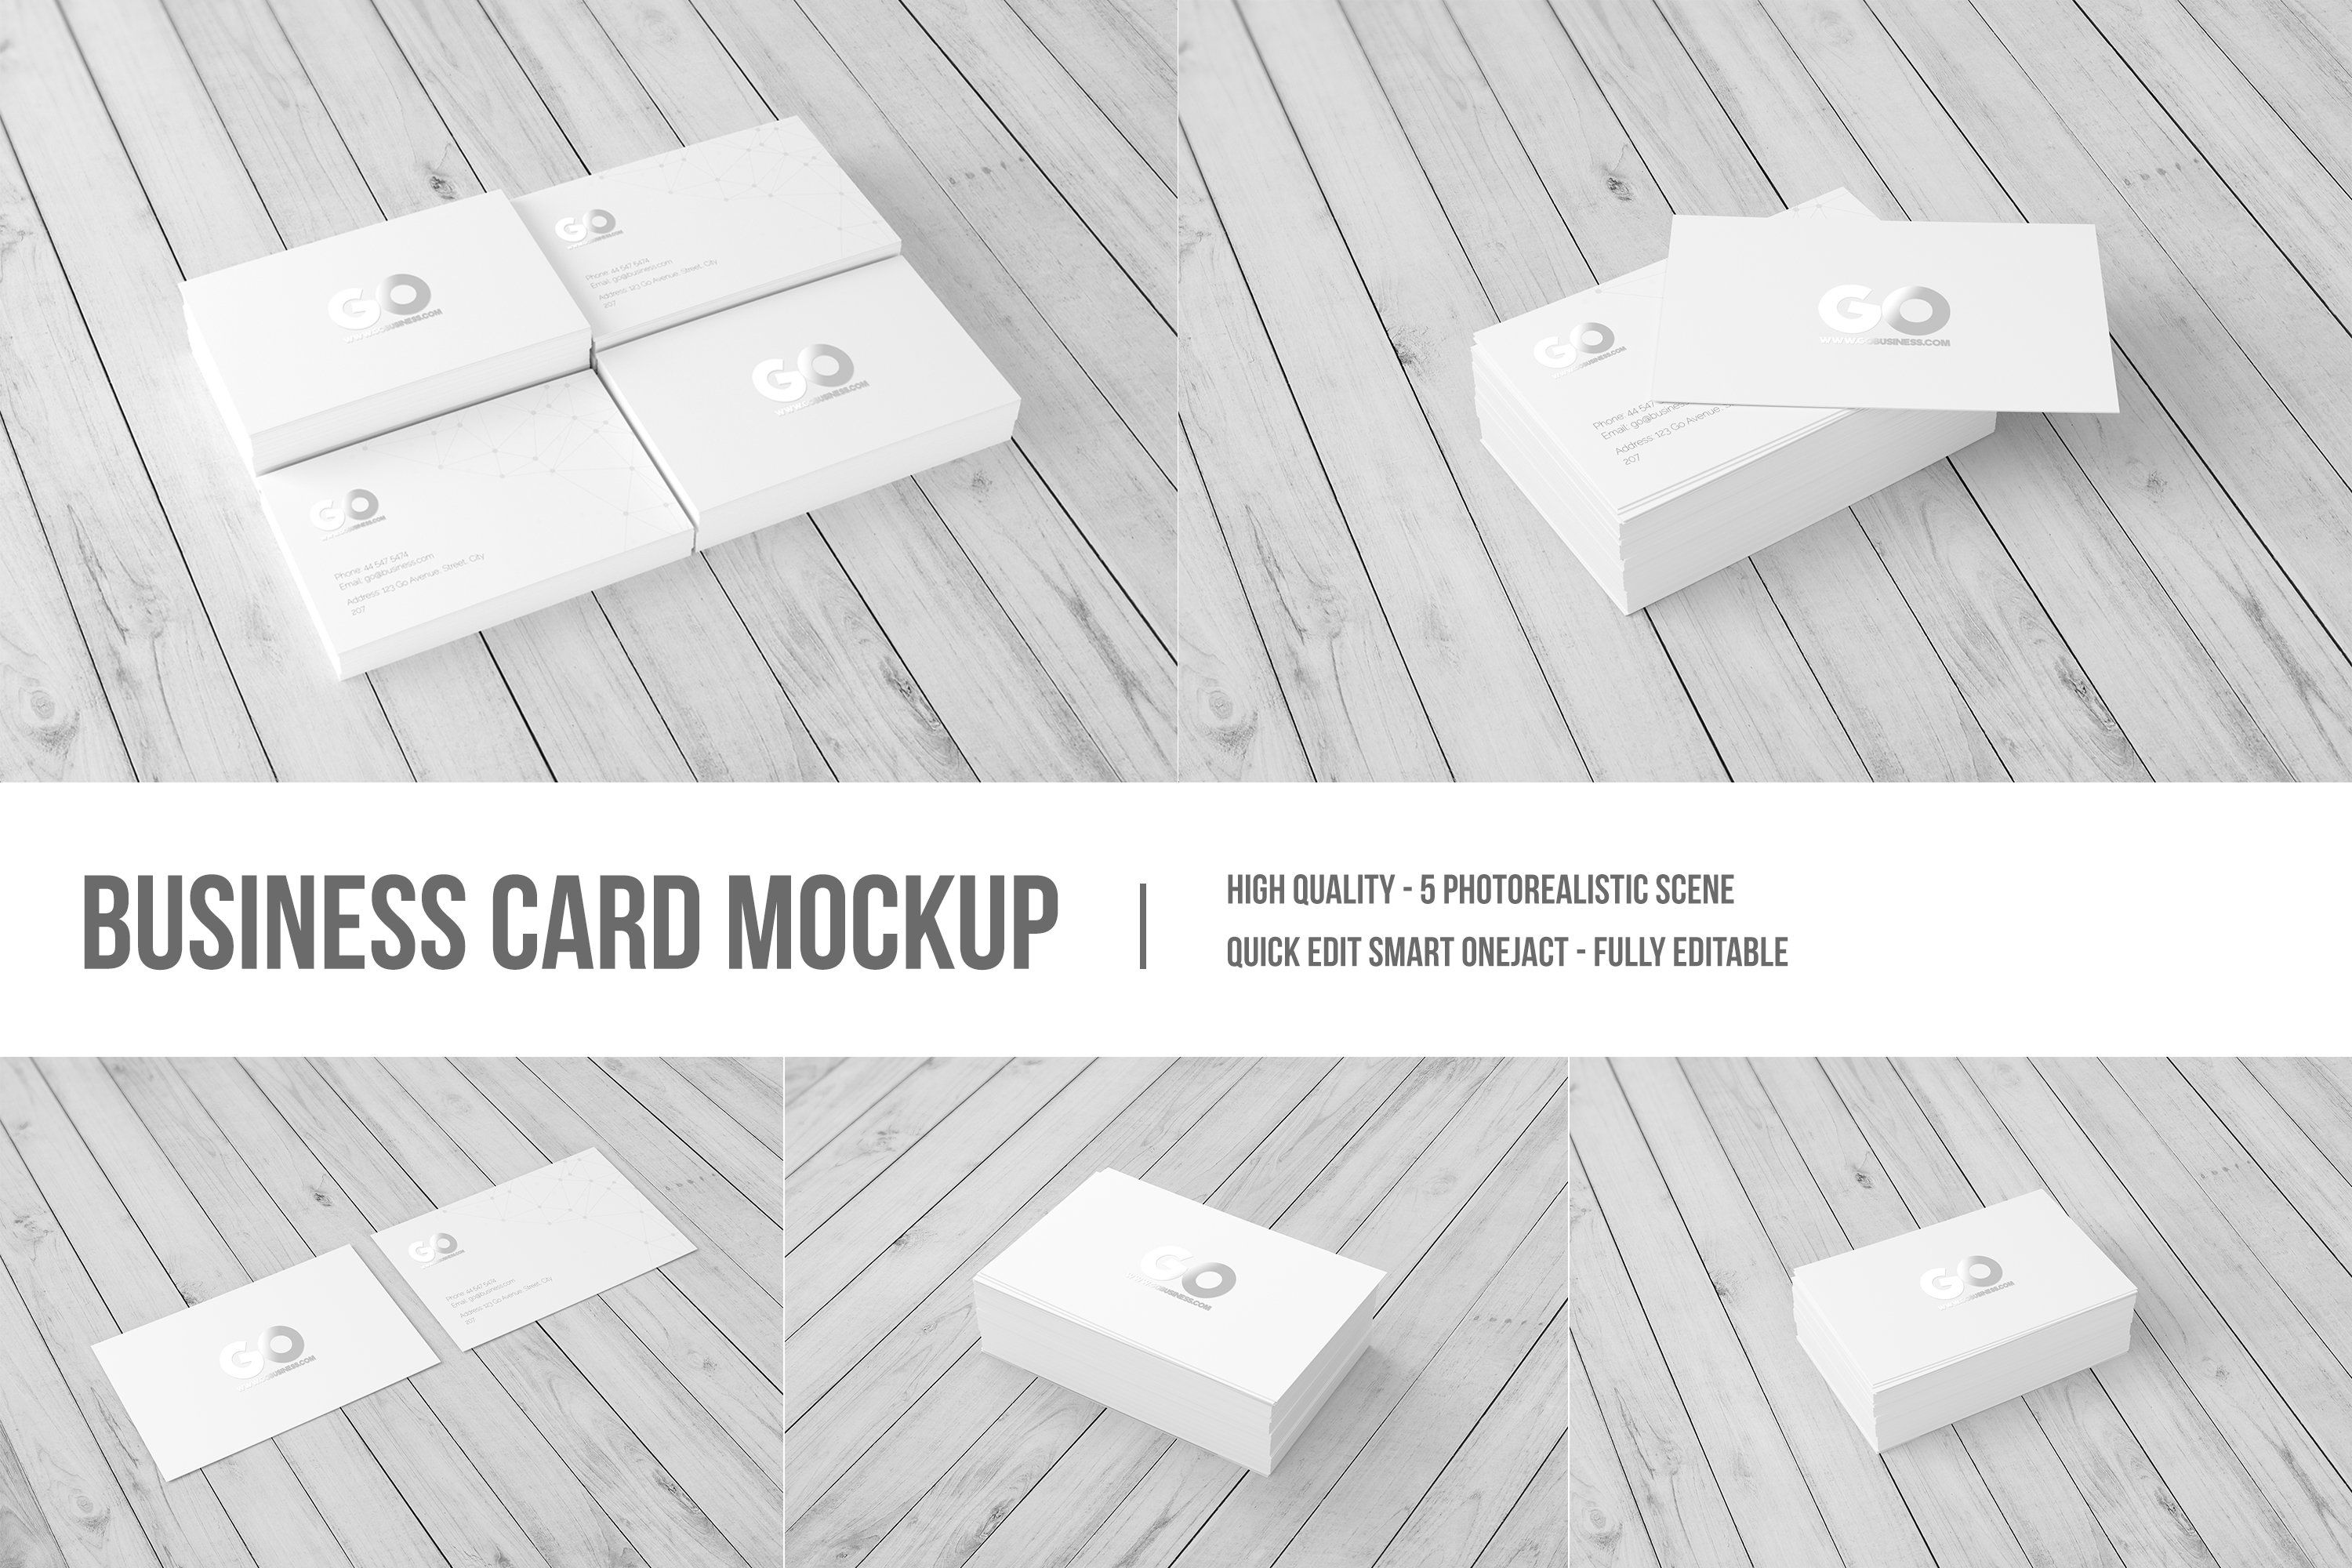 Business Card Mockup Ad Sponsored Changeable Files